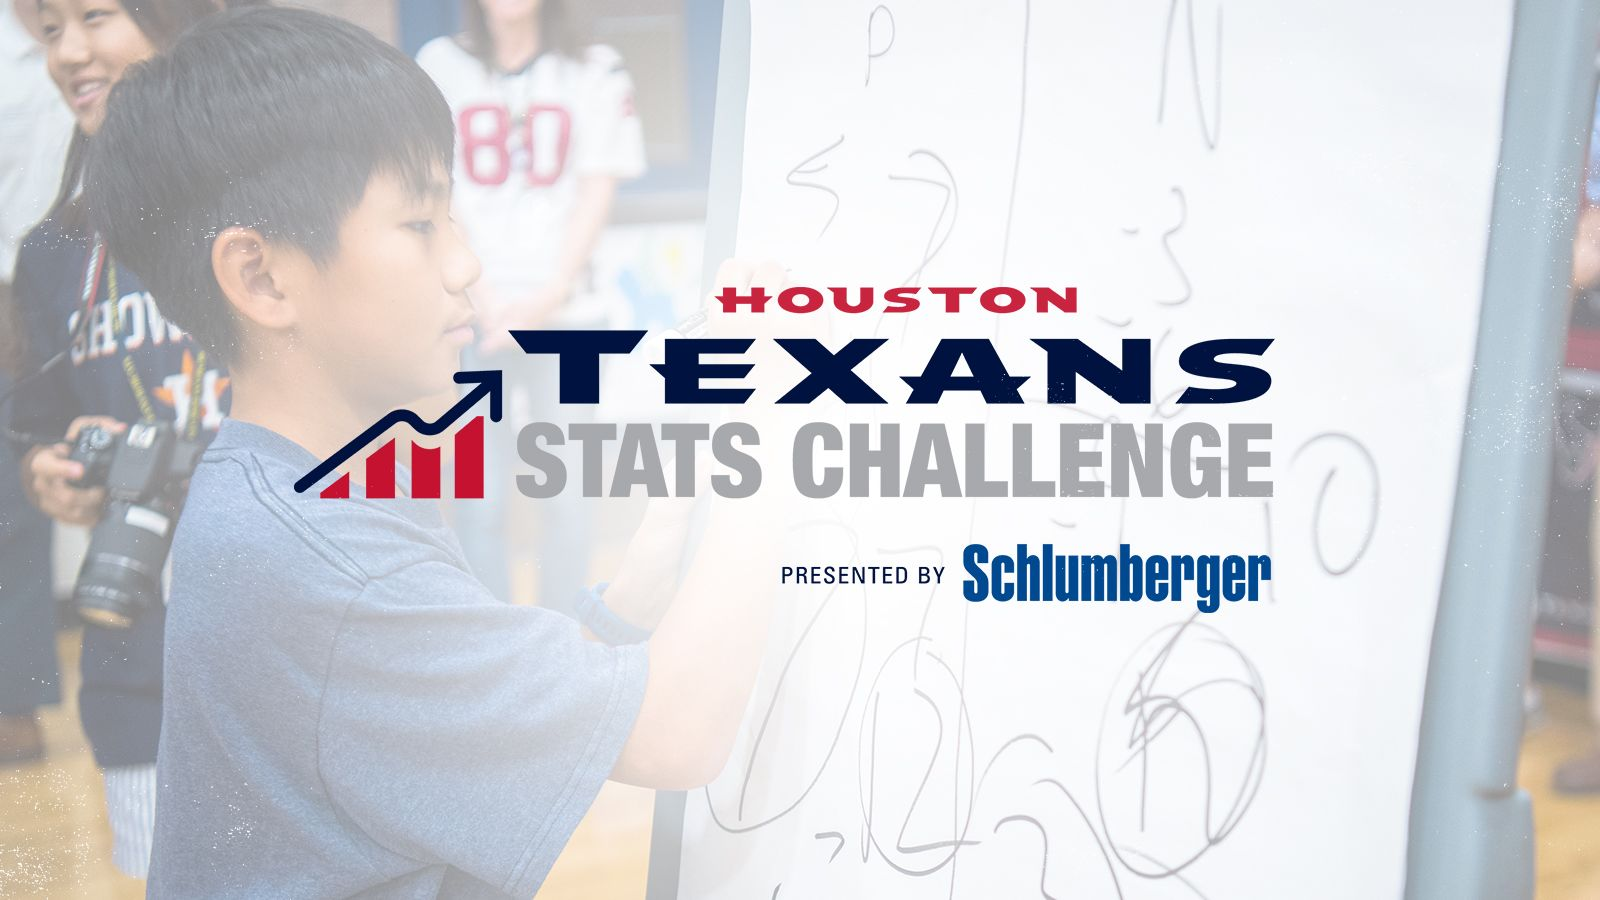 Houston Texans Stats Challenge. presented by Schlumberger